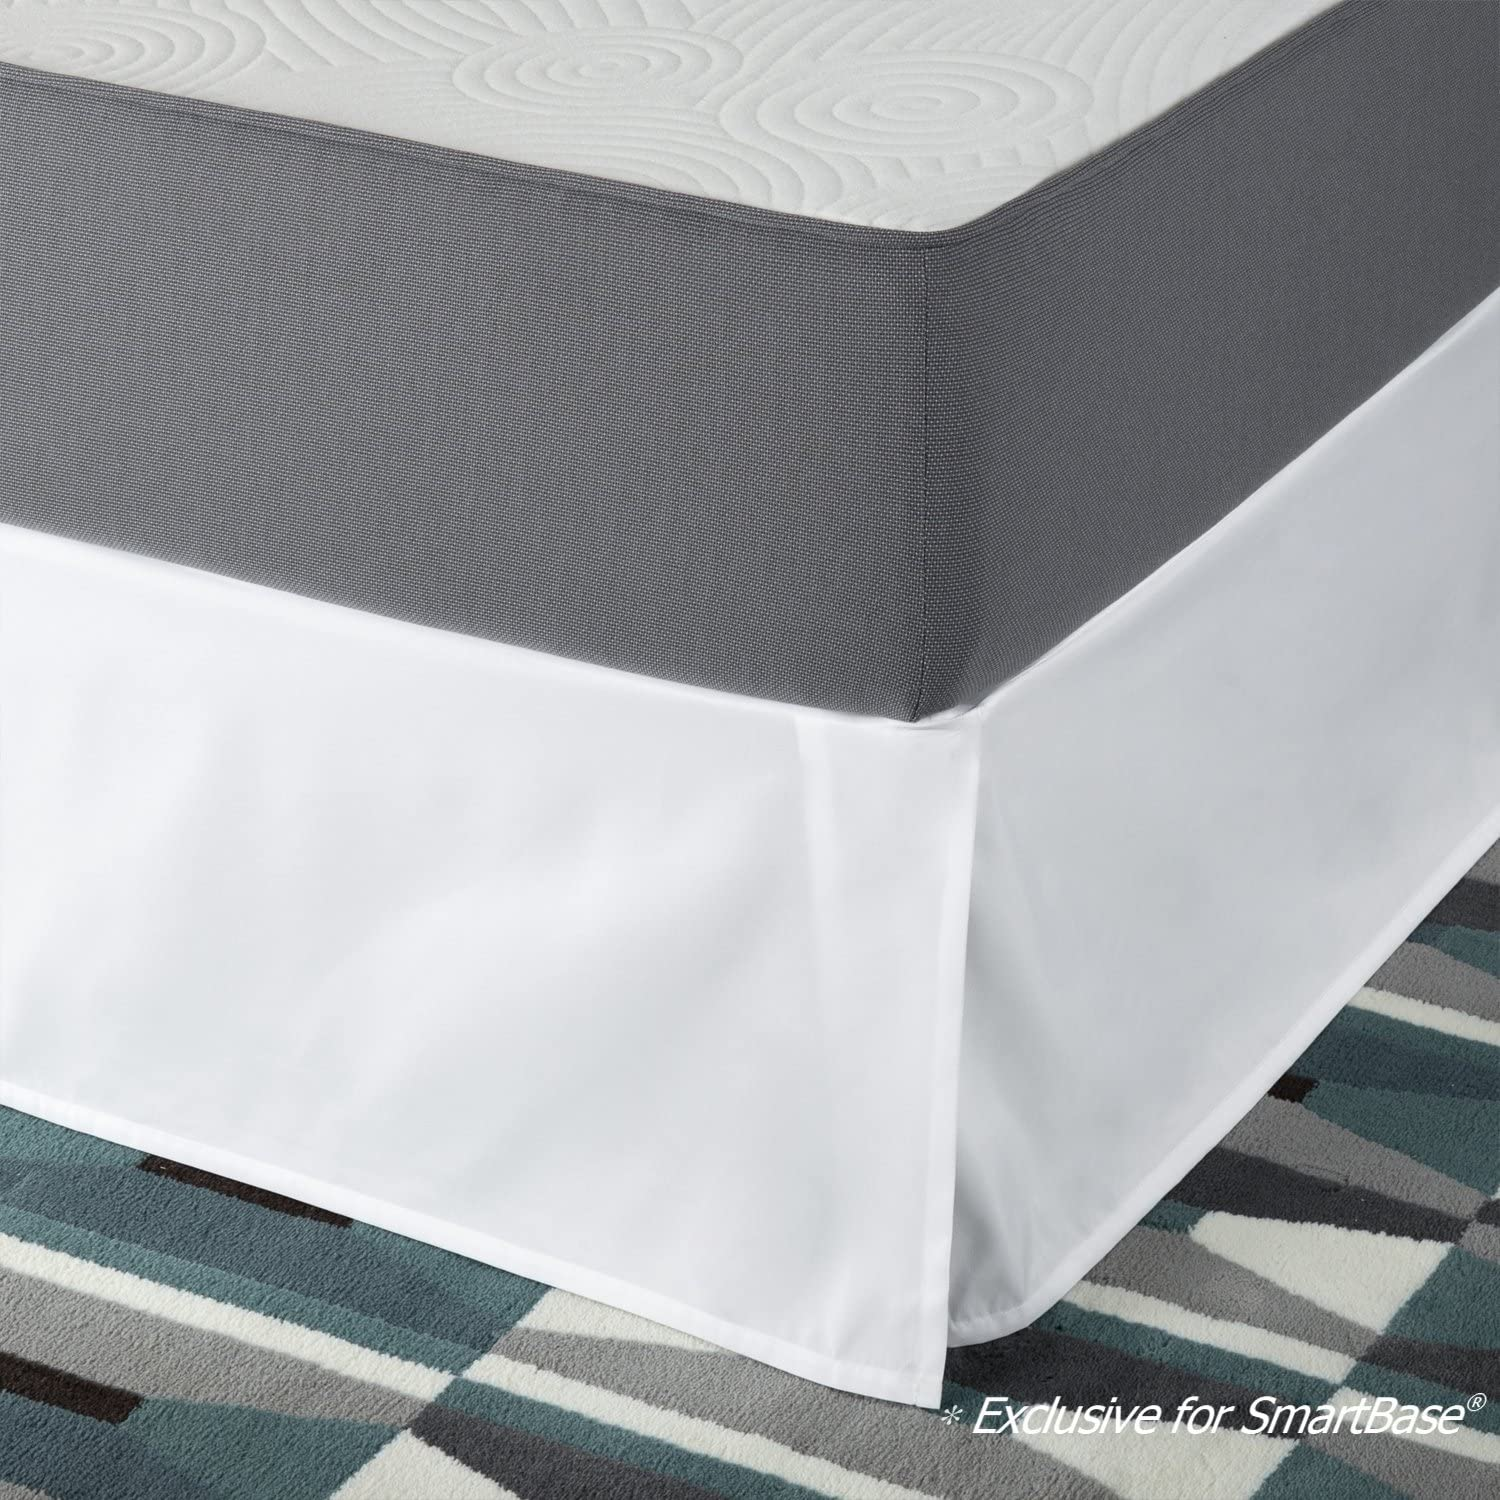 Amazon Com Zinus Smartbase Bed Skirt 16 Inch Drop For Use With Smartbase Easy On Off Design King Home Kitchen